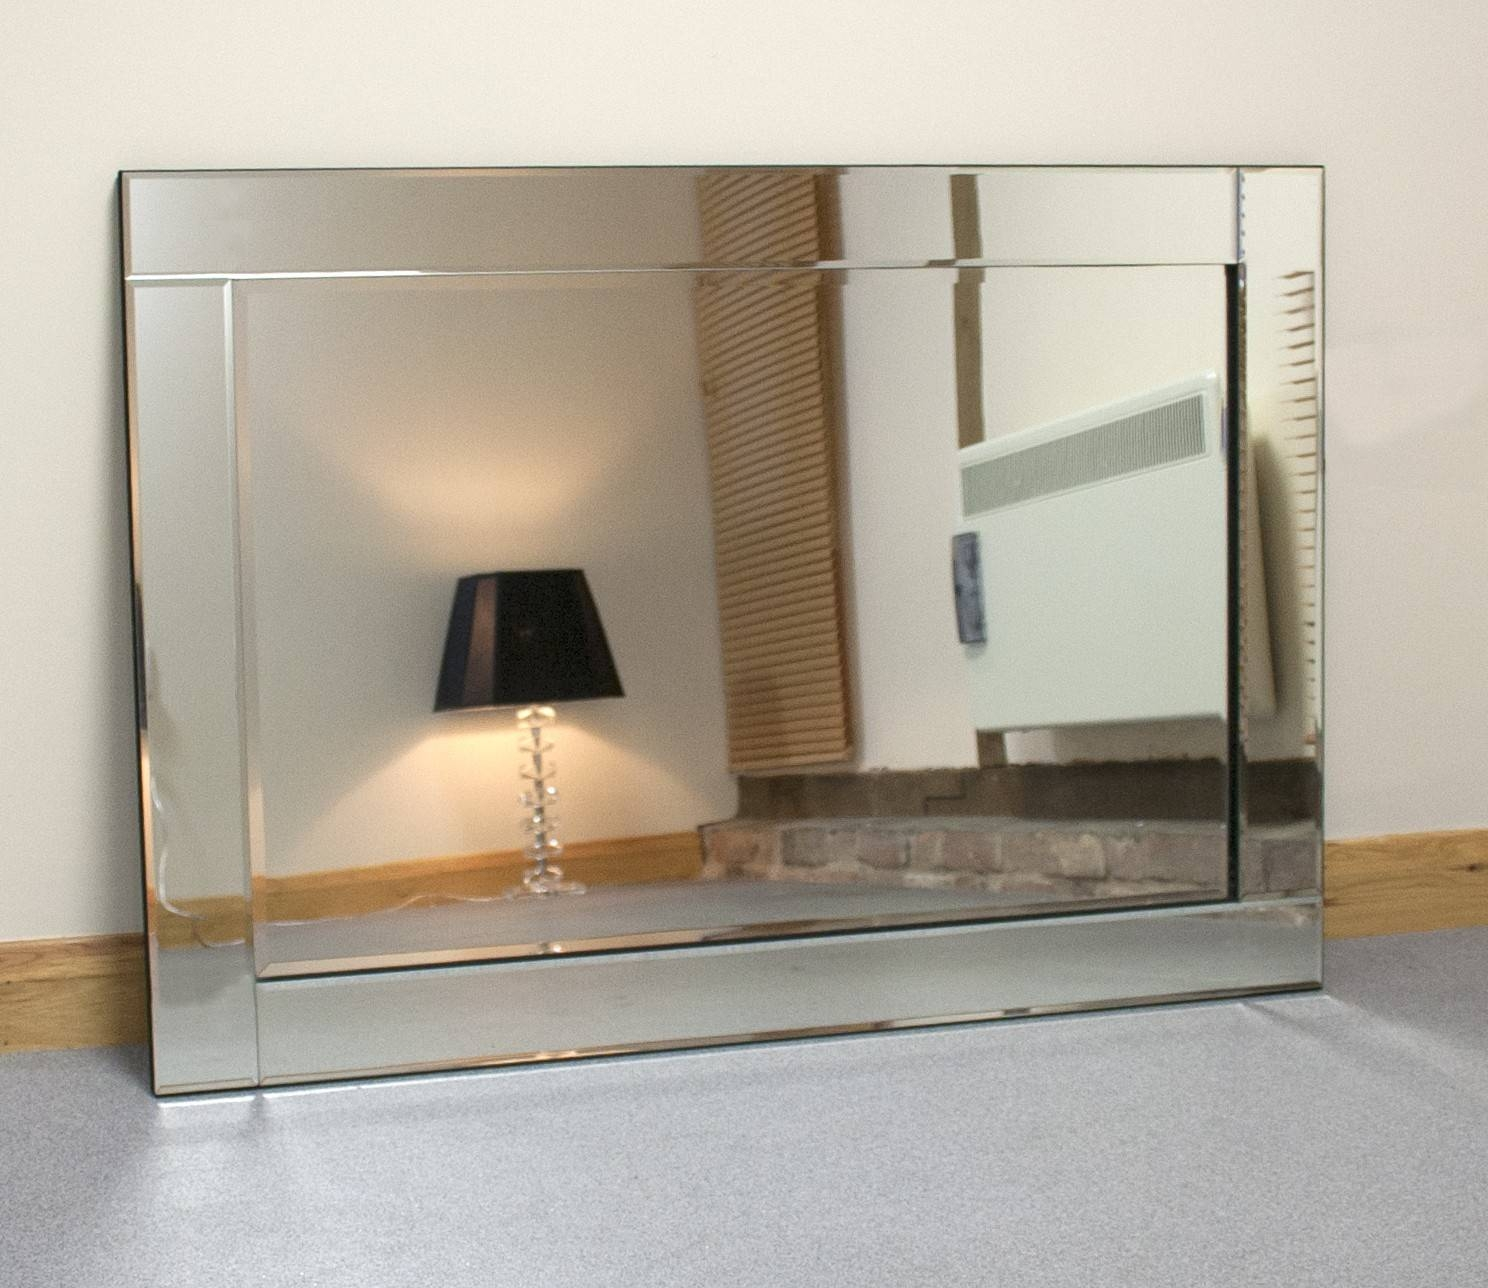 Chloe Large Silver Glass Framed Rectangle Bevelled Wall Mirror 48 Inside Large Glass Bevelled Wall Mirrors (View 3 of 25)